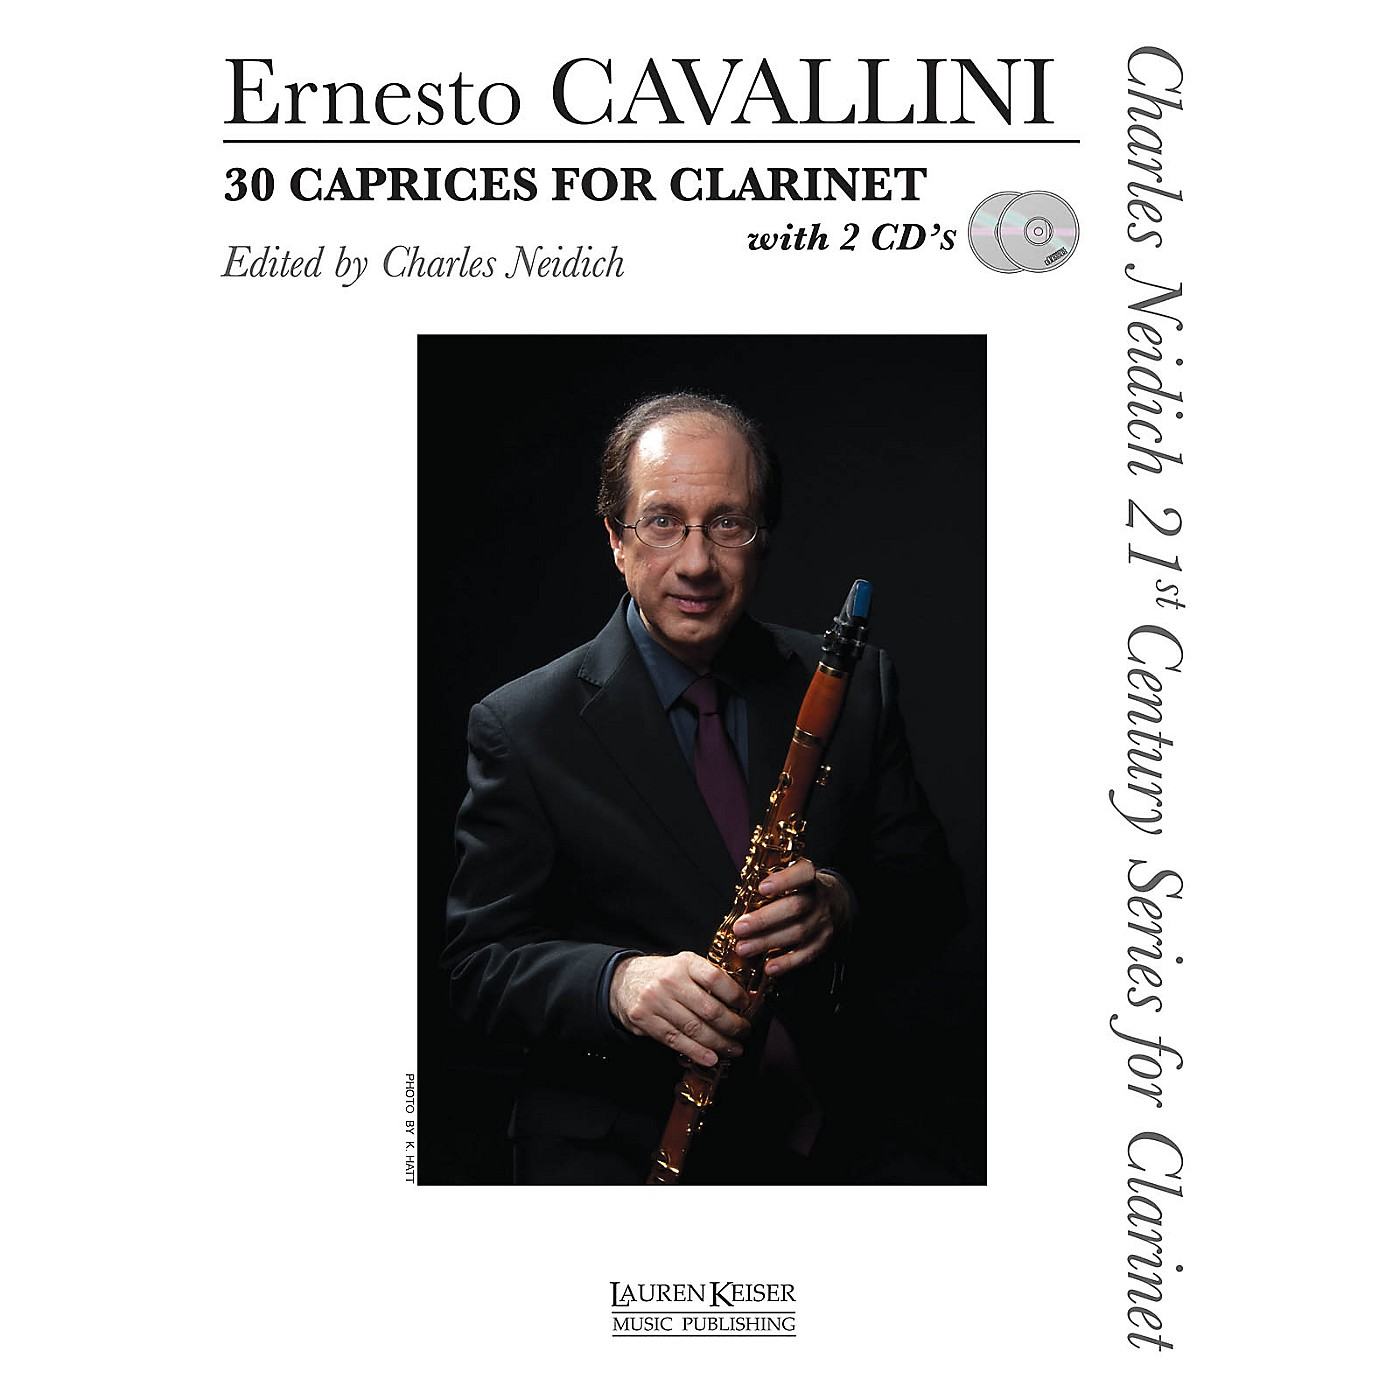 Lauren Keiser Music Publishing 30 Caprices for Clarinet LKM Music BK/Online Auido Composed by Ernesto Cavallini Edited by Charles Neidich thumbnail